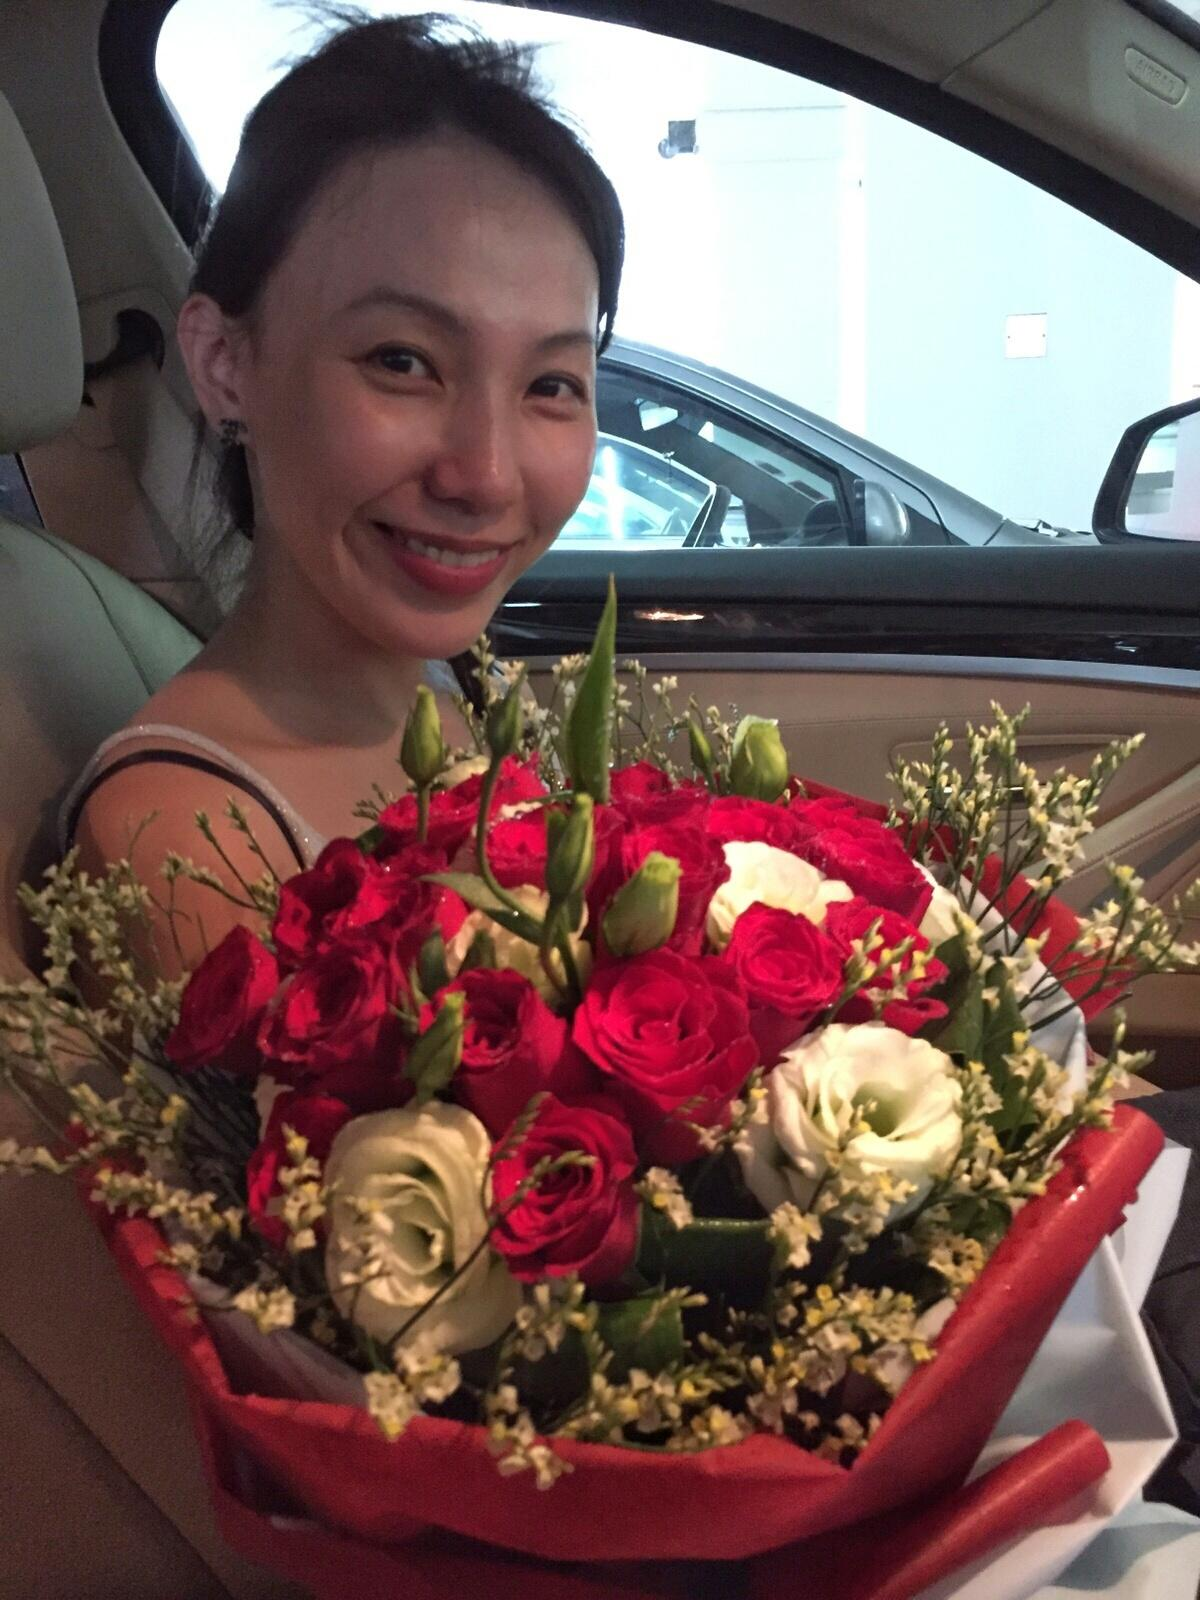 Thinking hard if I should post this unglam phot but this is the moment where I got my flowers..